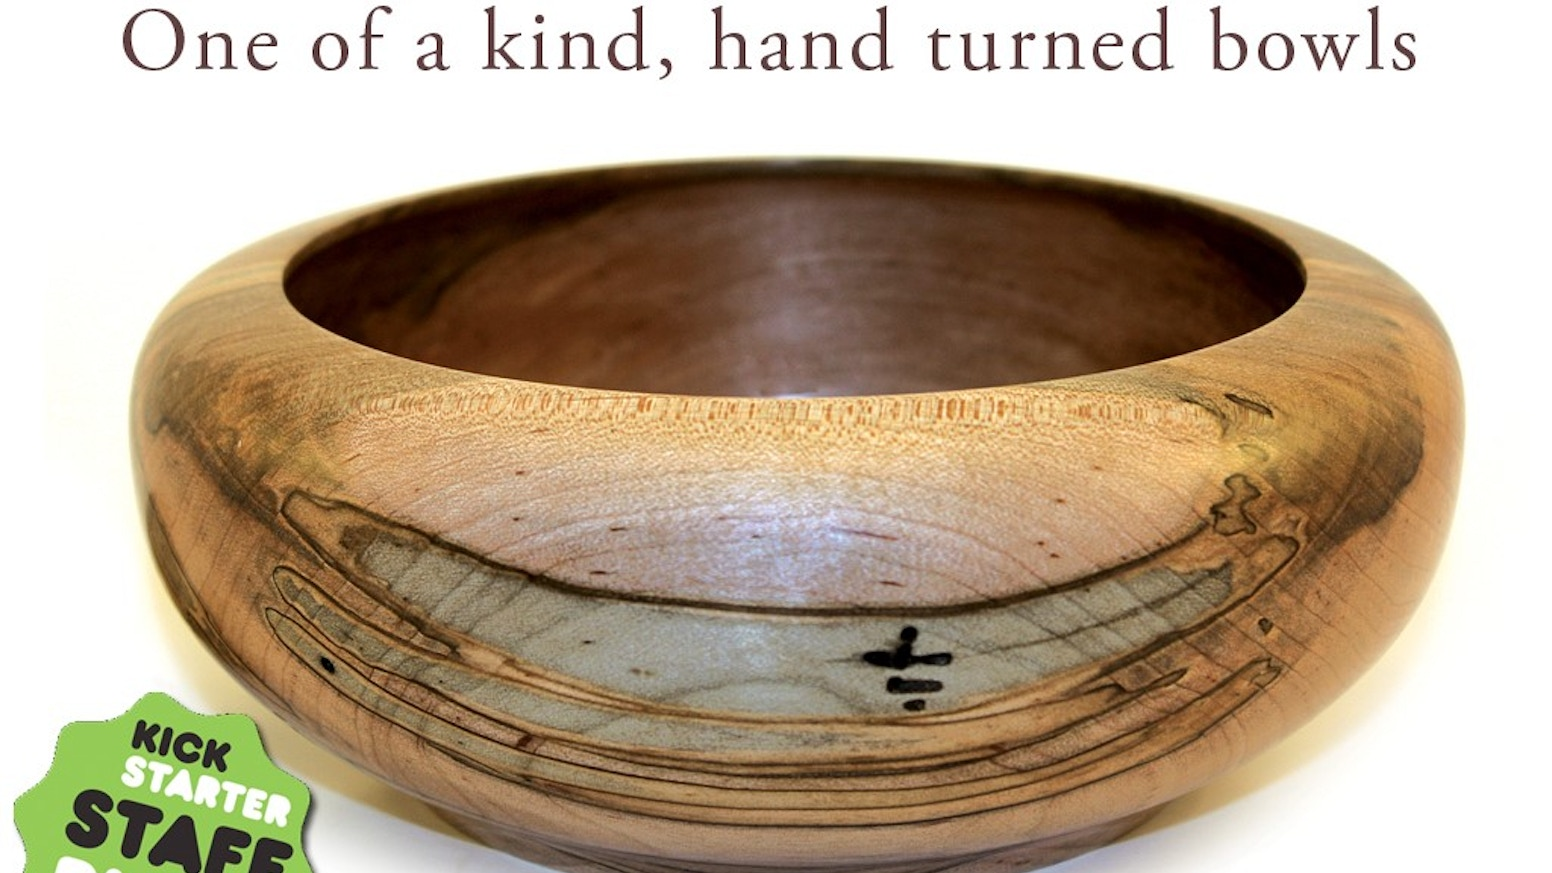 Curt Cobler Fine Wooden Bowls Wood Bowls Limited Editions By Curt